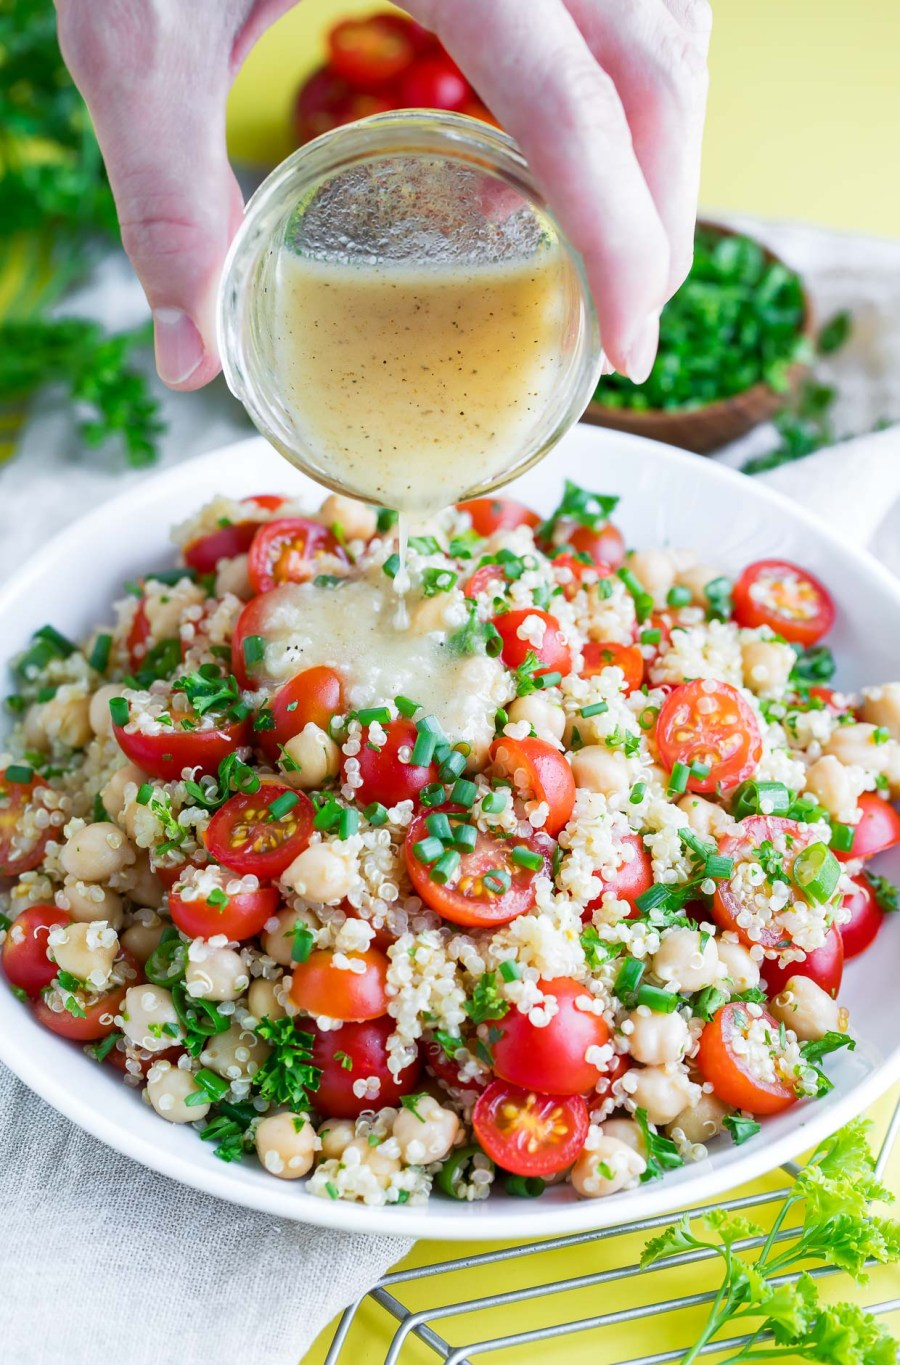 Healthy Tomato Quinoa Salad with Garlic Lime Dressing